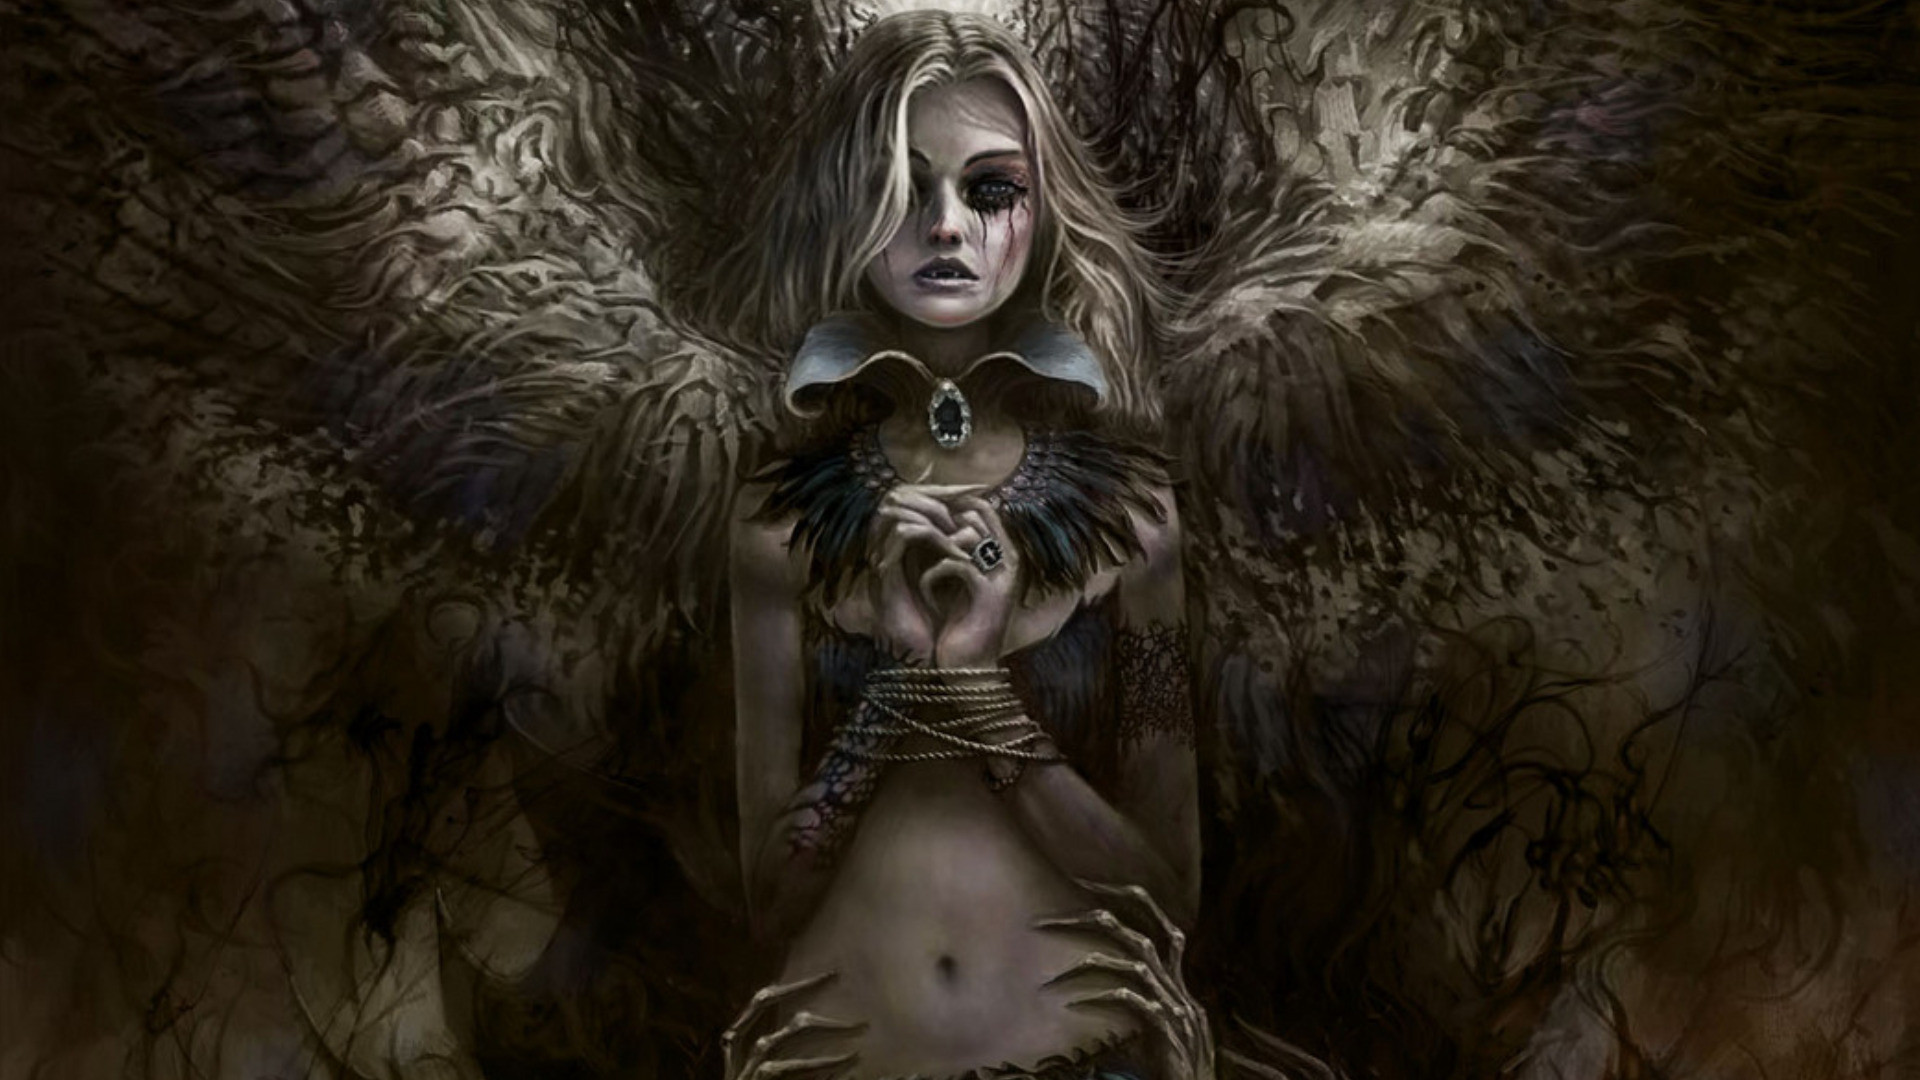 Fallen angels images wallpaper 68 images - Gothic fallen angel pictures ...